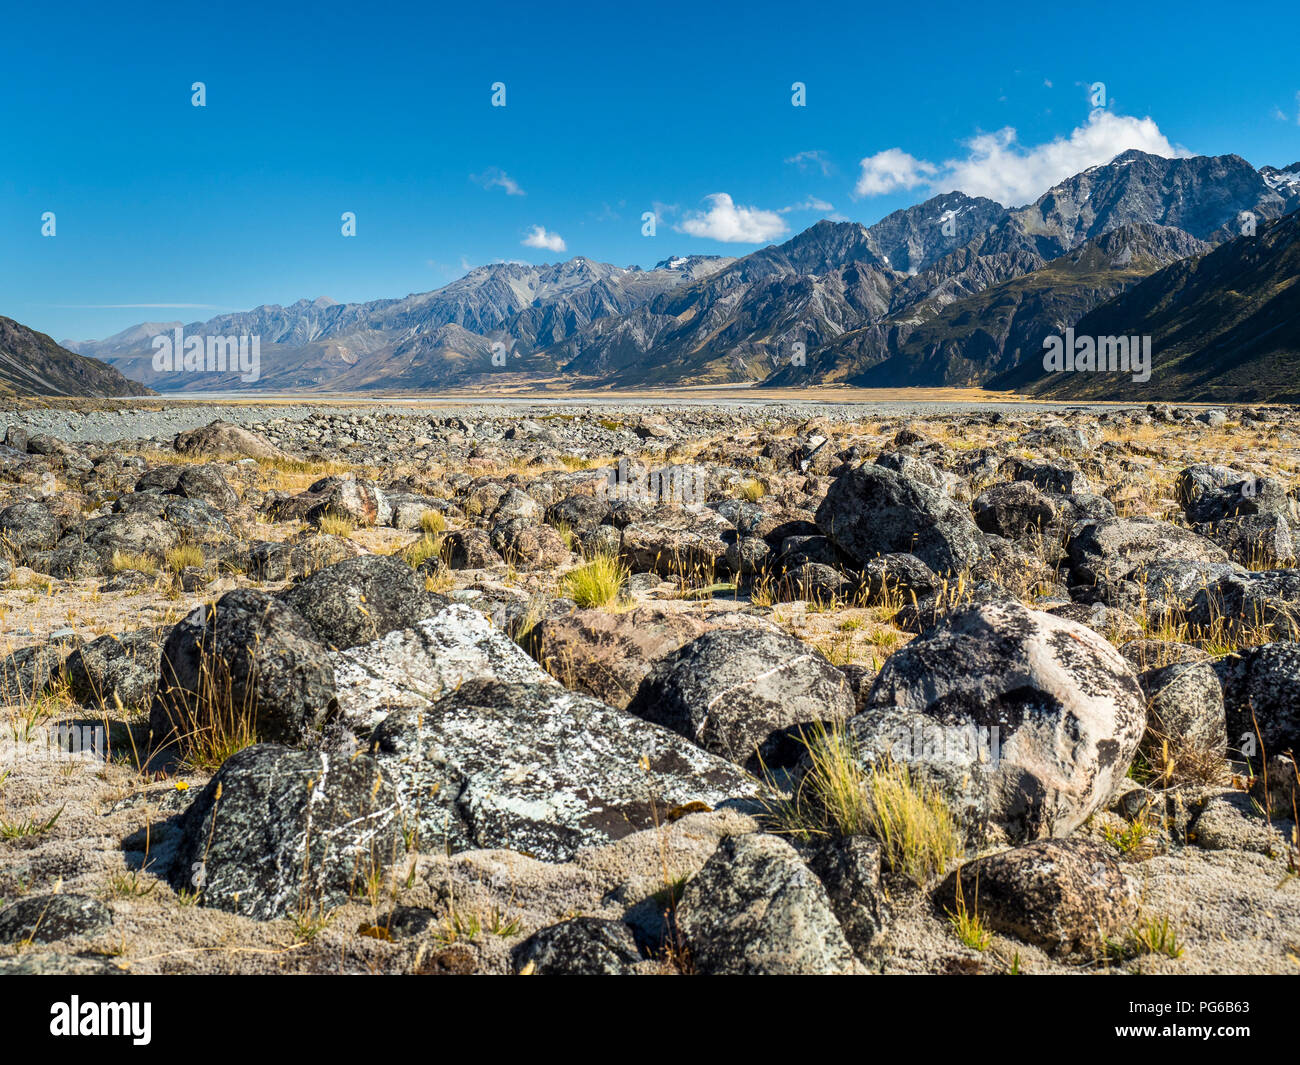 New Zealand, South Island, view to Tasman Valley at Mount Cook National Park - Stock Image